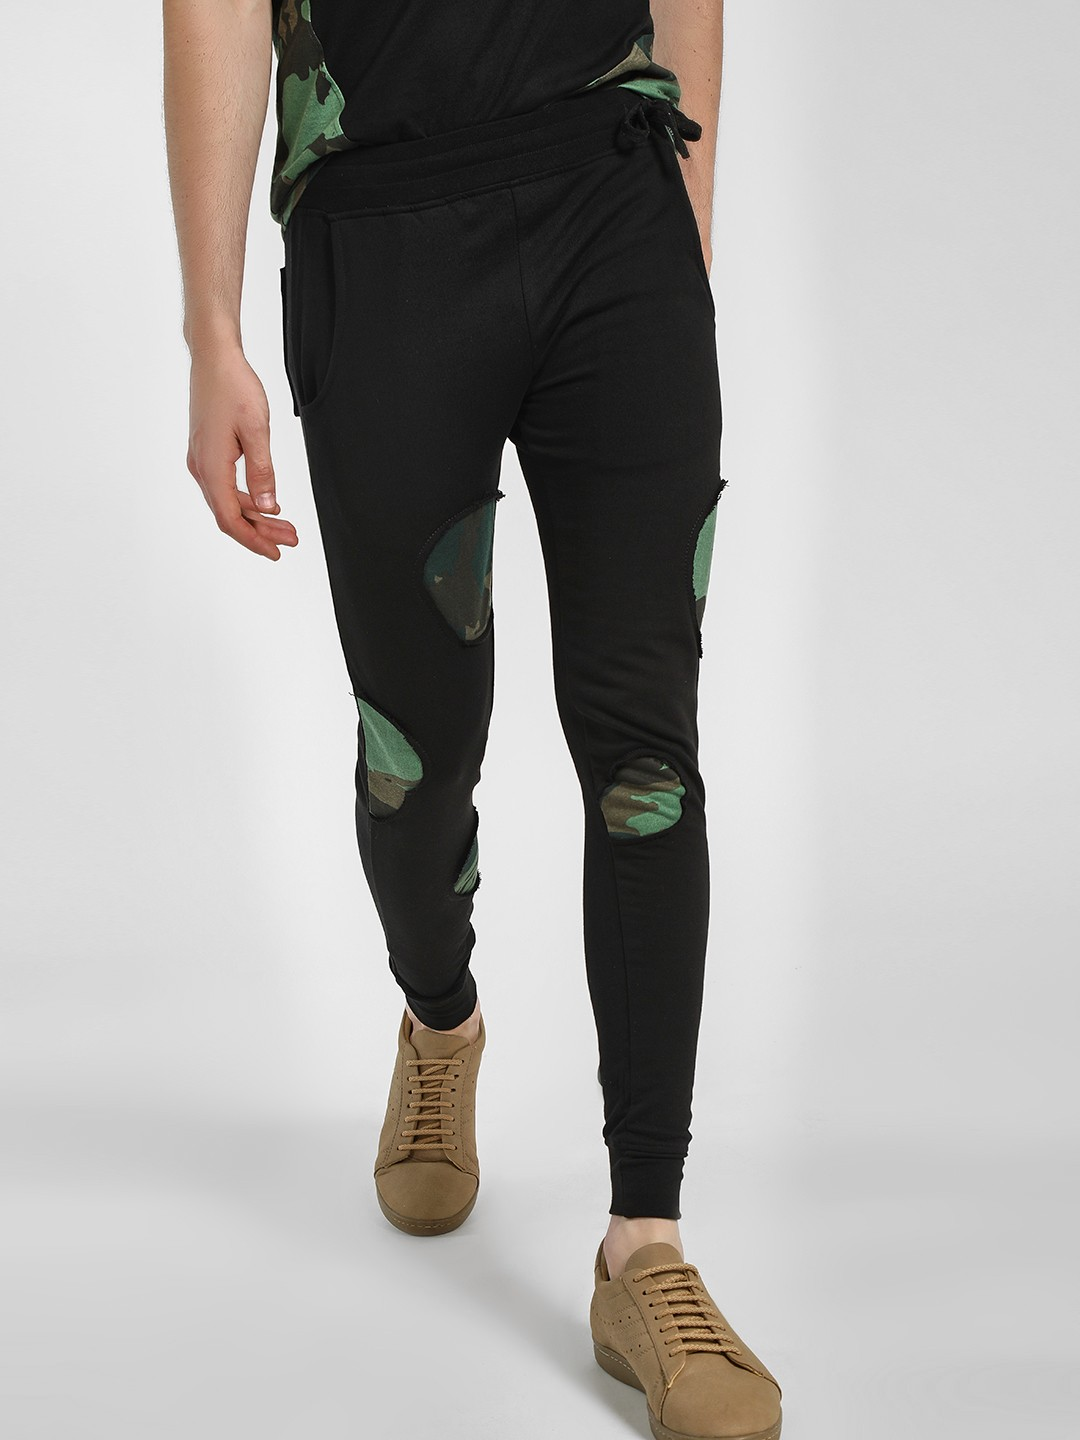 Kultprit Black Camo Patch Slim Fit Joggers 1